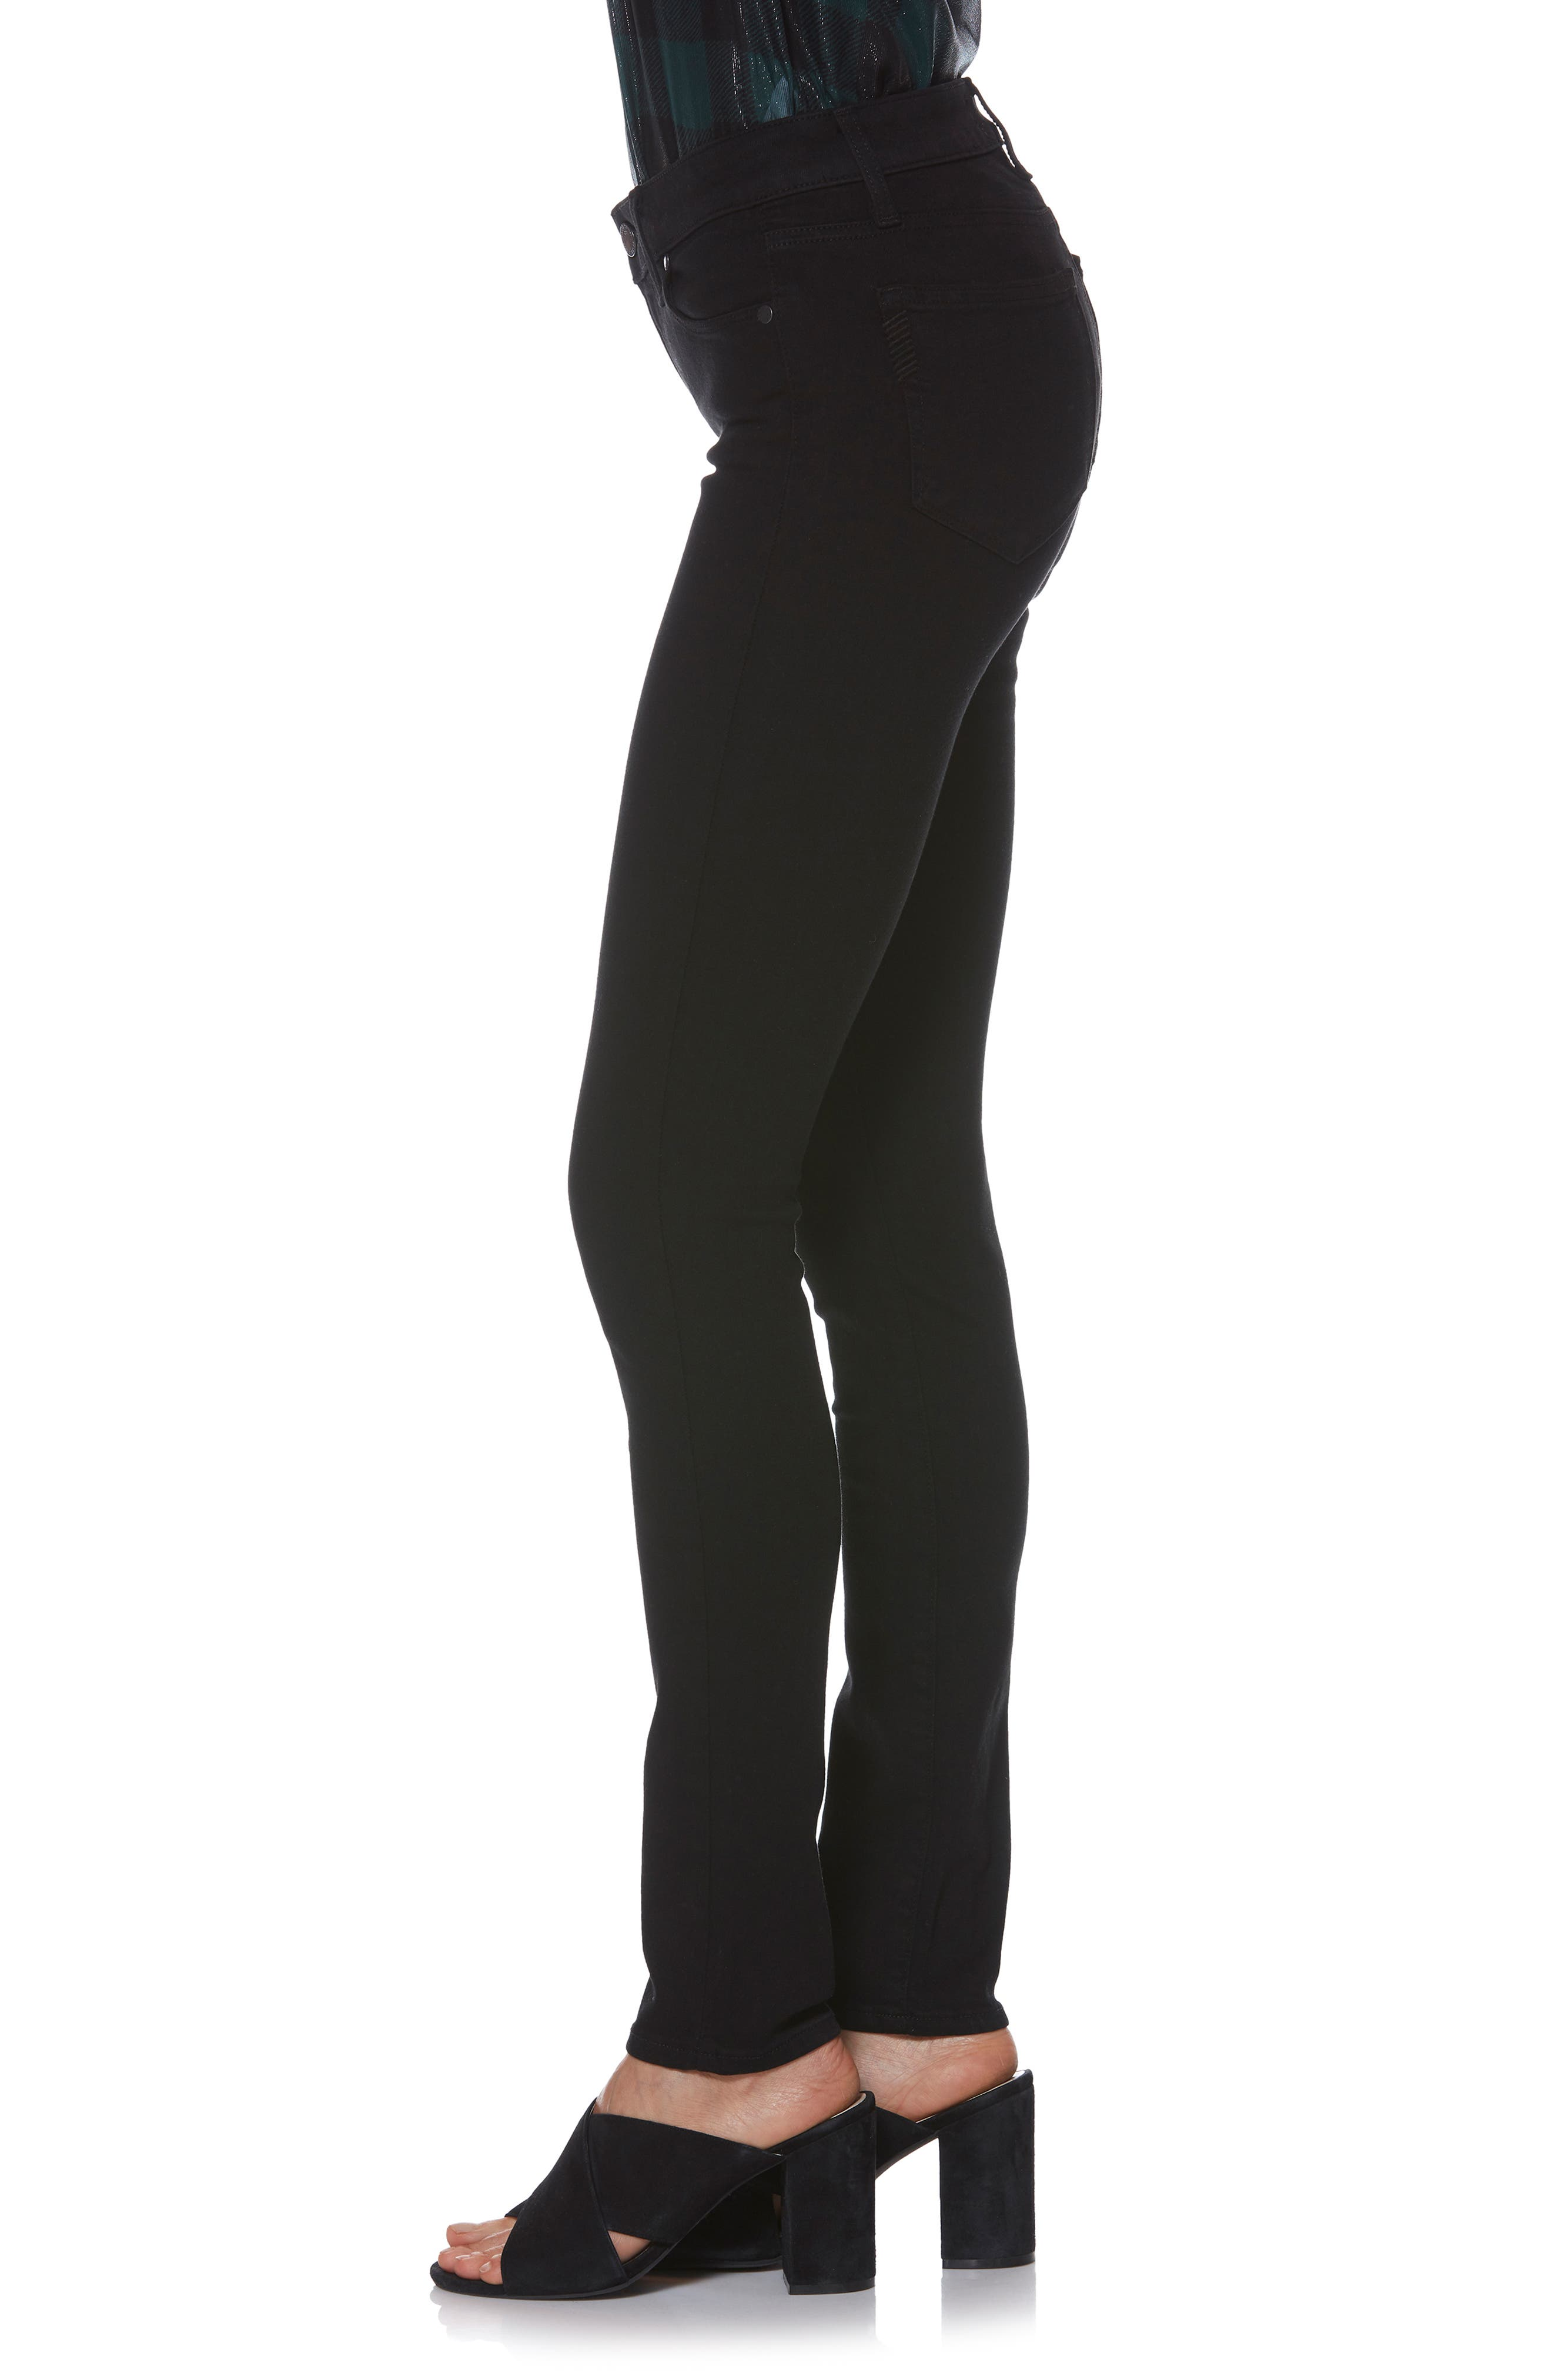 PAIGE, Transcend - Skyline Skinny Jeans, Alternate thumbnail 6, color, BLACK SHADOW